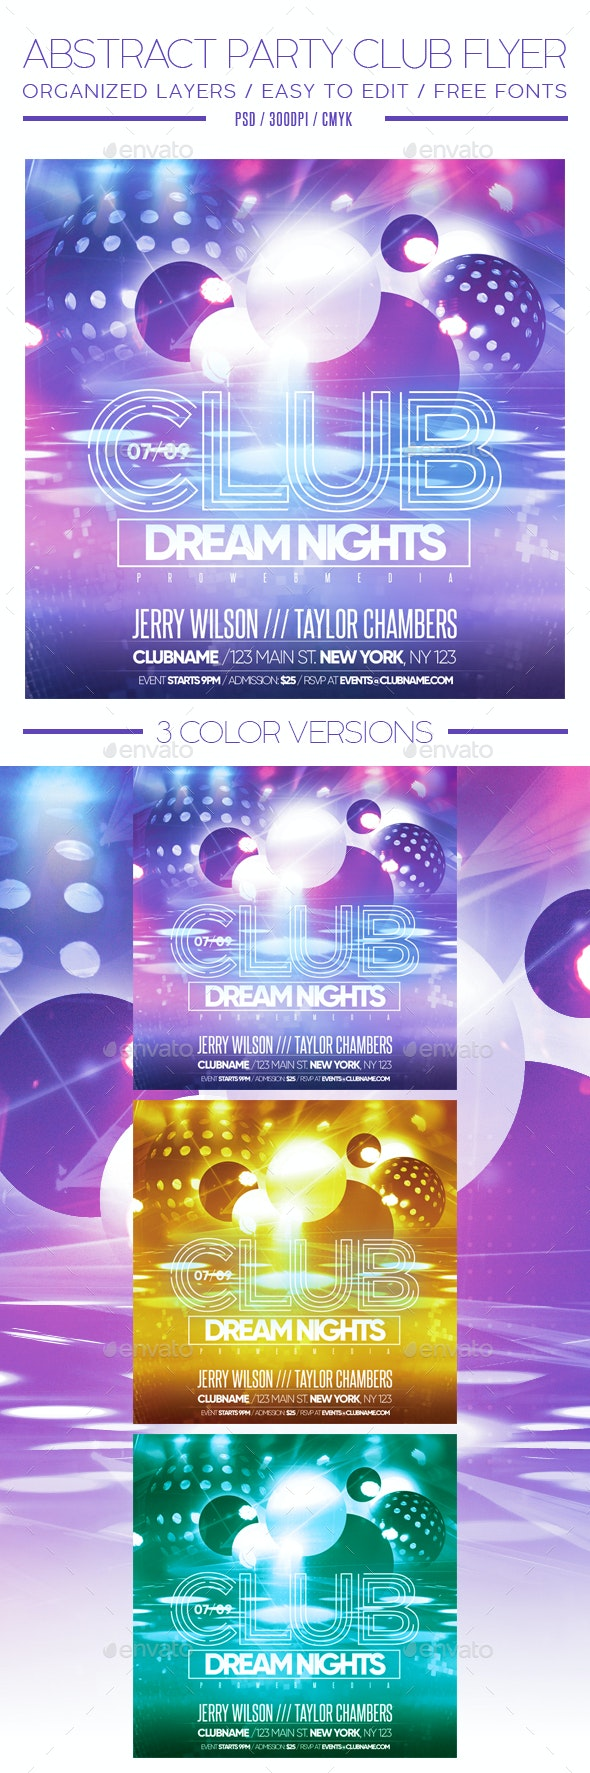 Abstract Party Club Flyer - Clubs & Parties Events